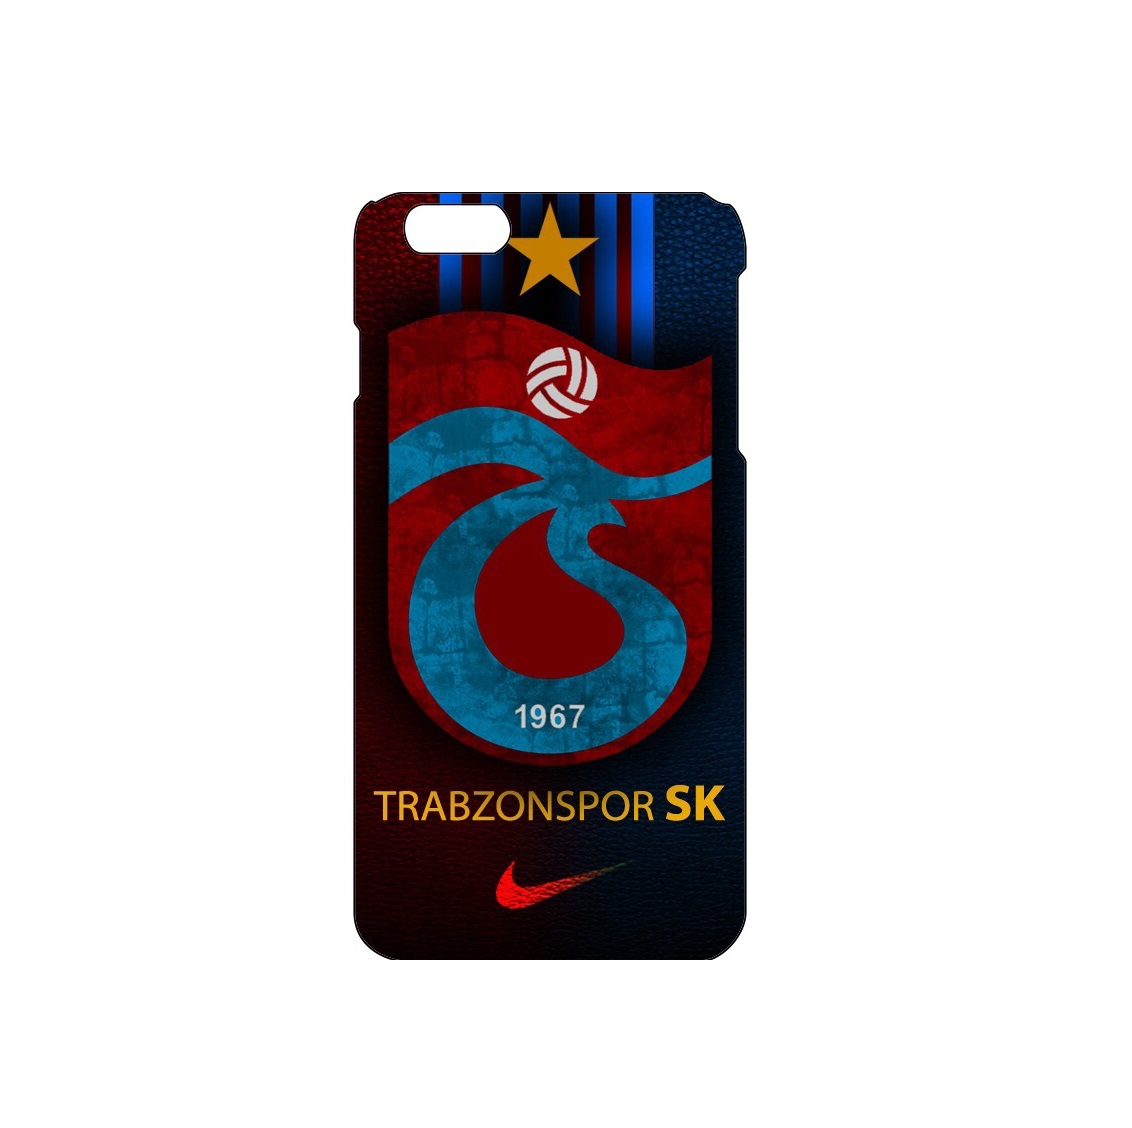 handy hülle schutz case trabzon trabzonspor bordo mavi 61 apple iphone rundumschutz